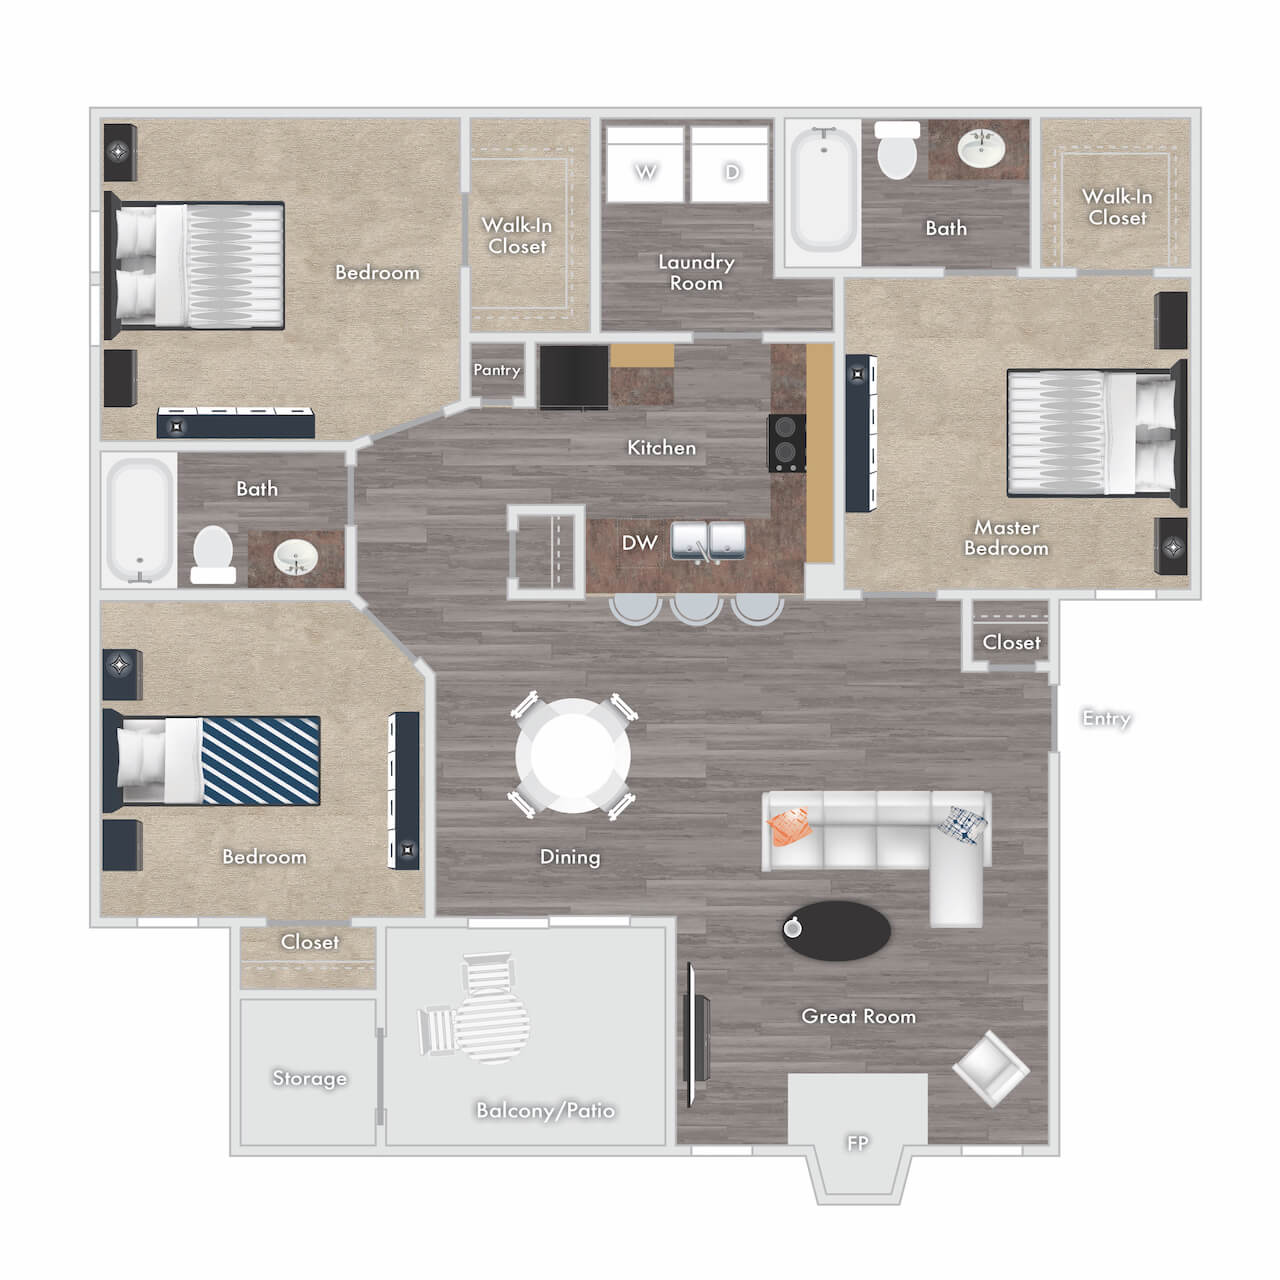 Ryland floor plan - 3 bed 2 bath with fireplace, balcony, and storage